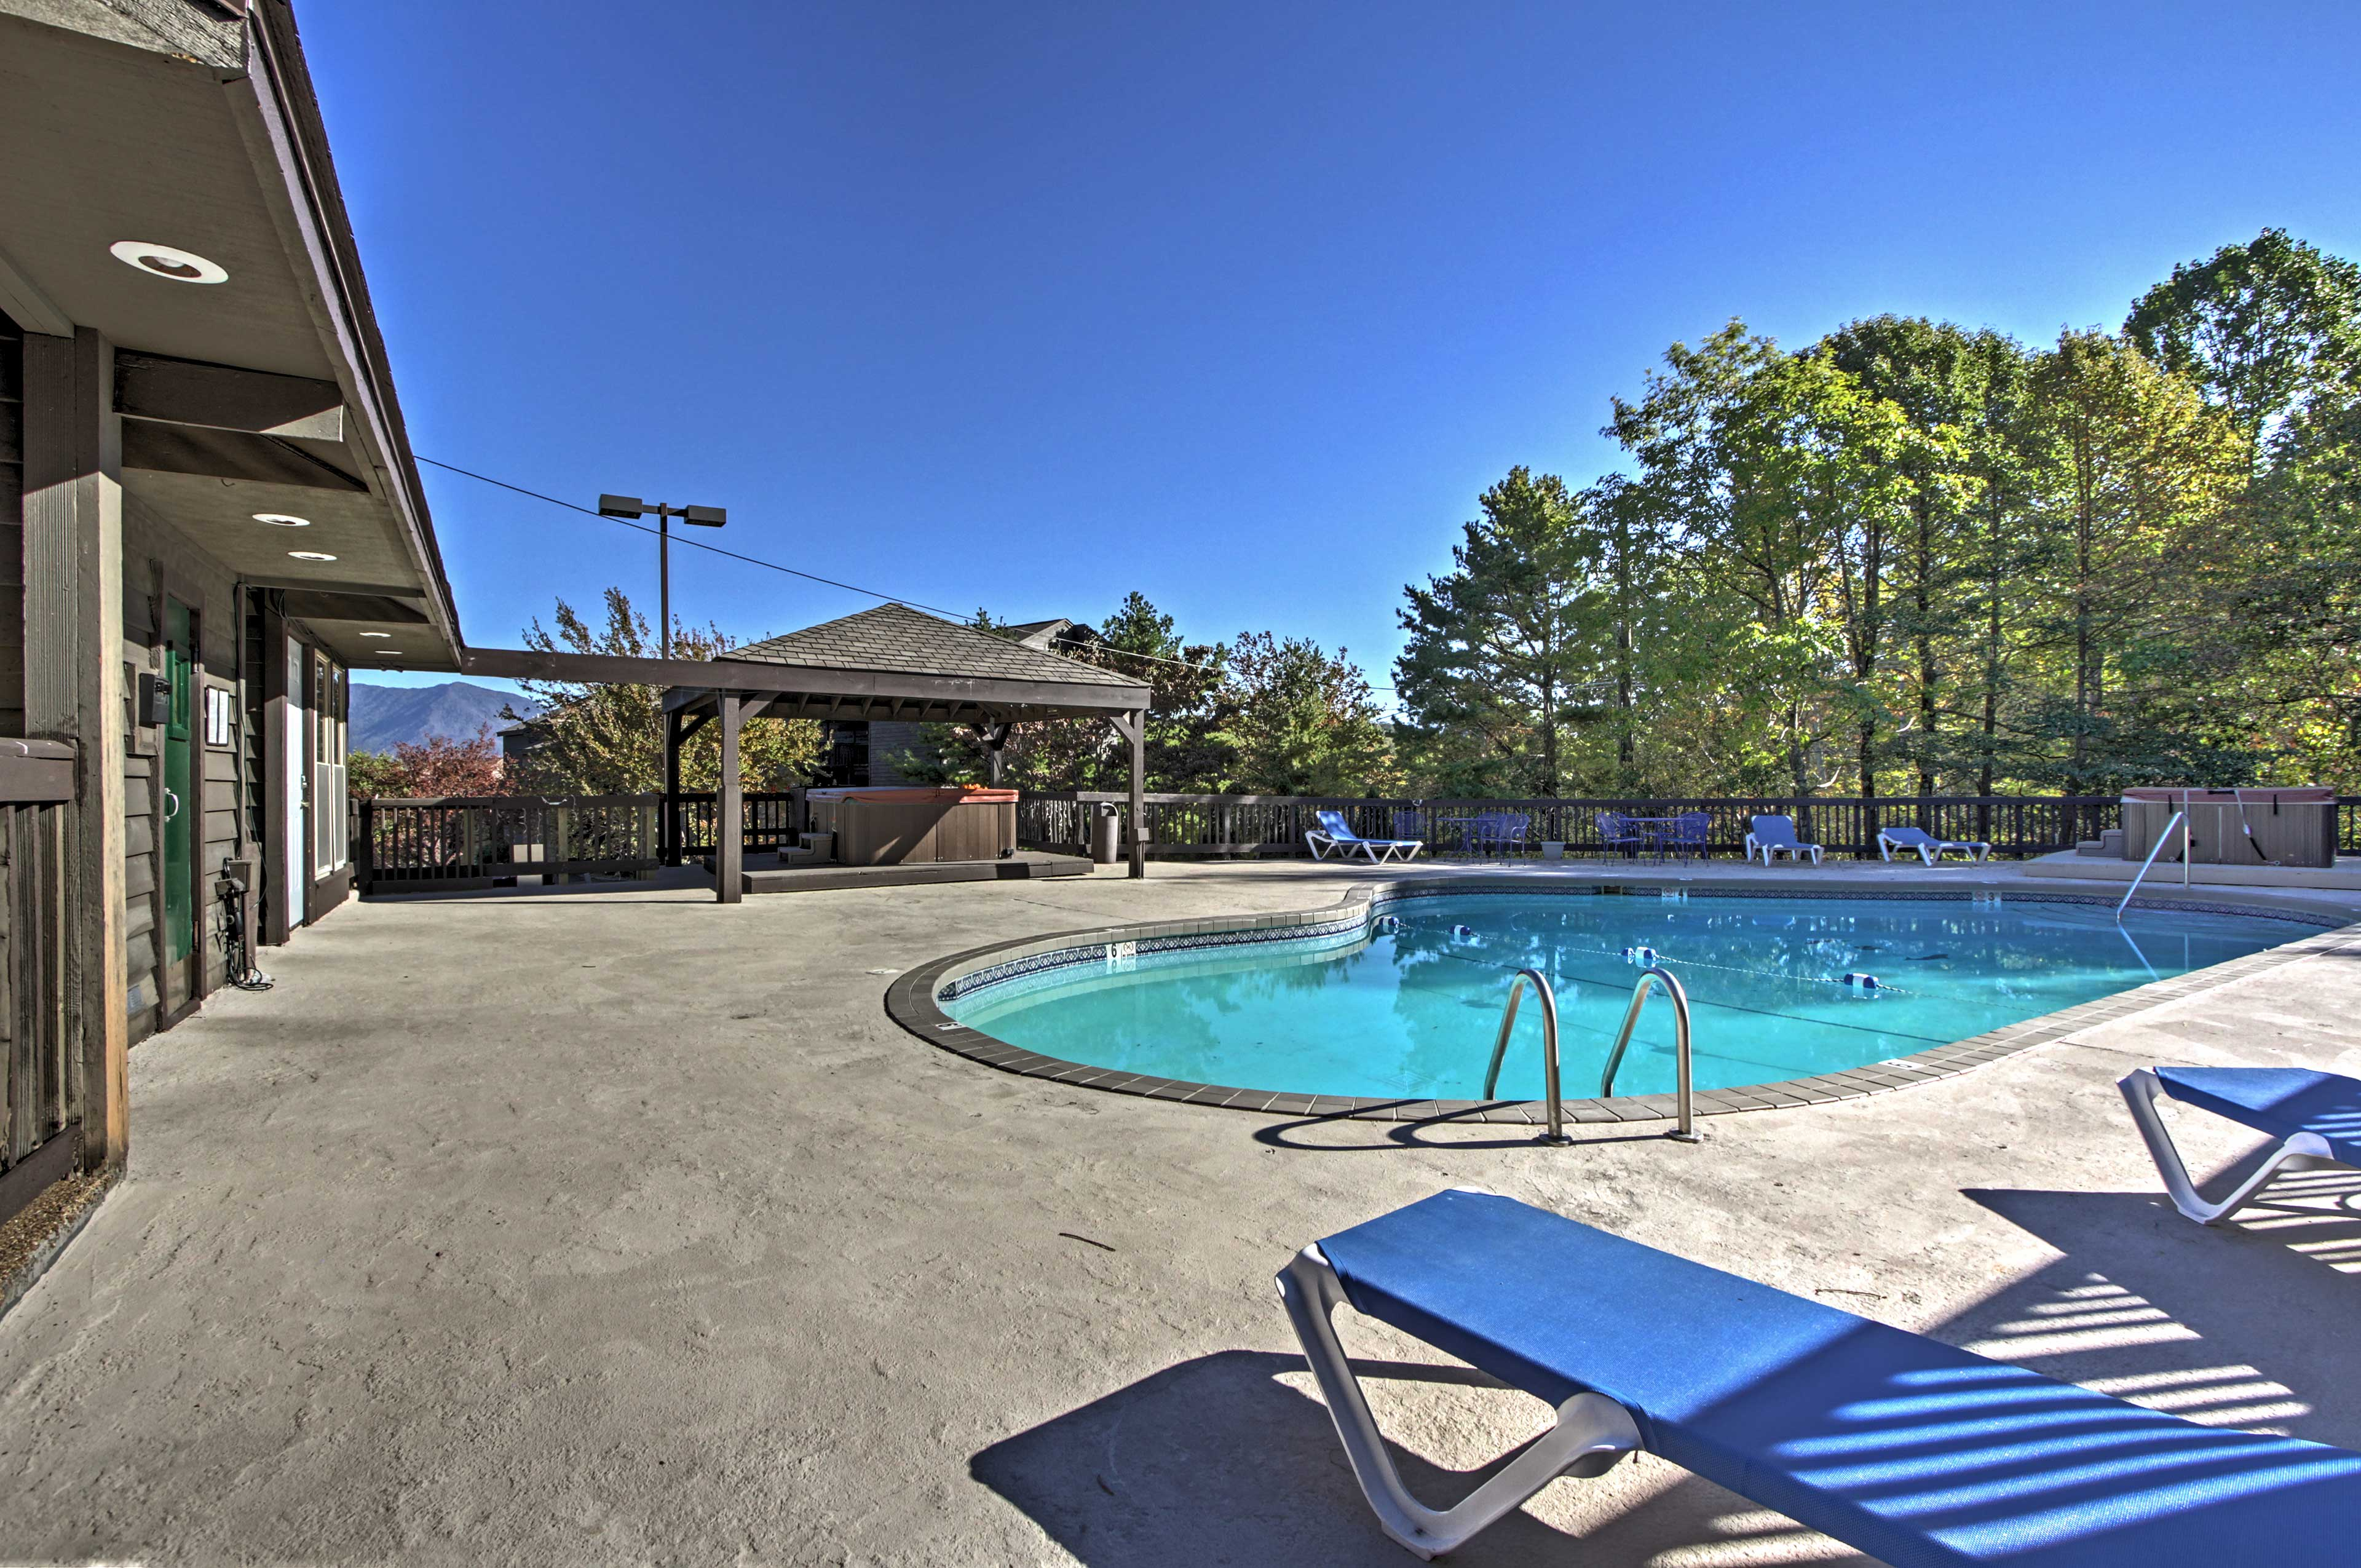 Escape to the Smokies by staying in this 2-bed, 2-bath vacation rental condo.